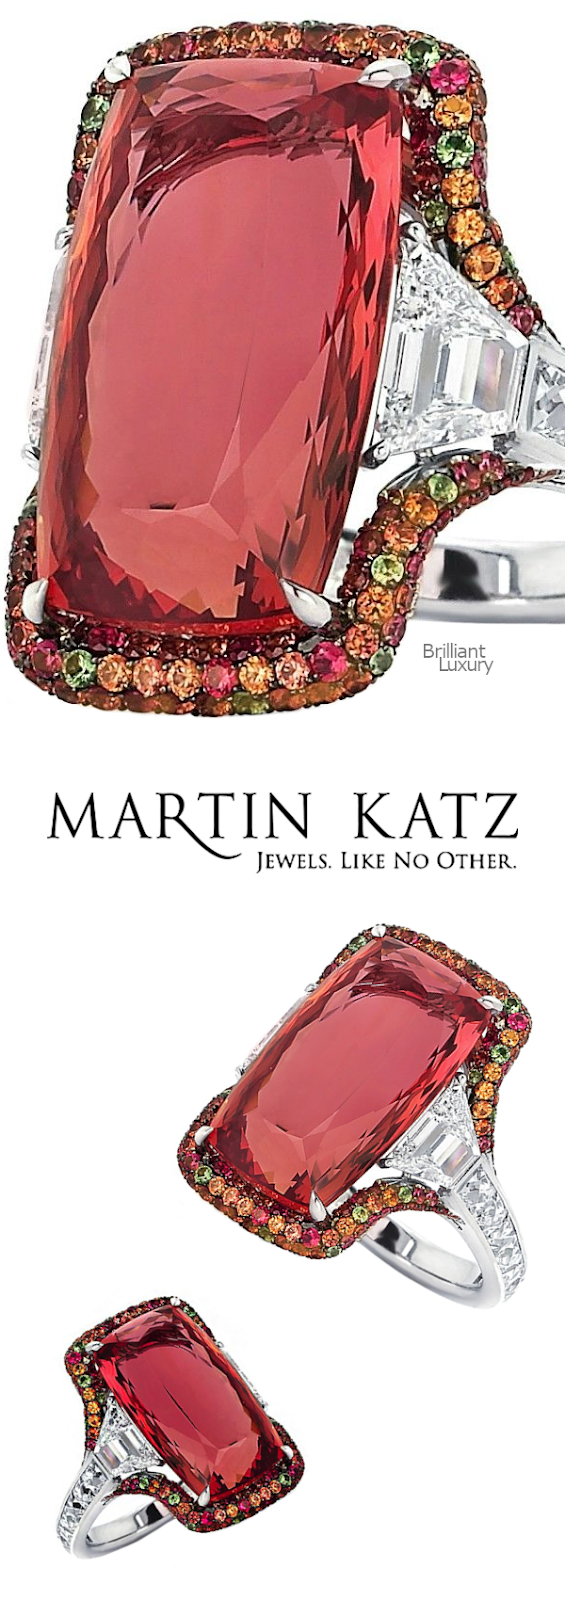 Brilliant Luxury♦Martin Katz 18 carat imperial topaz ring with two step-cut trapezoid diamonds and micro-set with diamonds, sapphires, tsavorite garnets and tourmalines